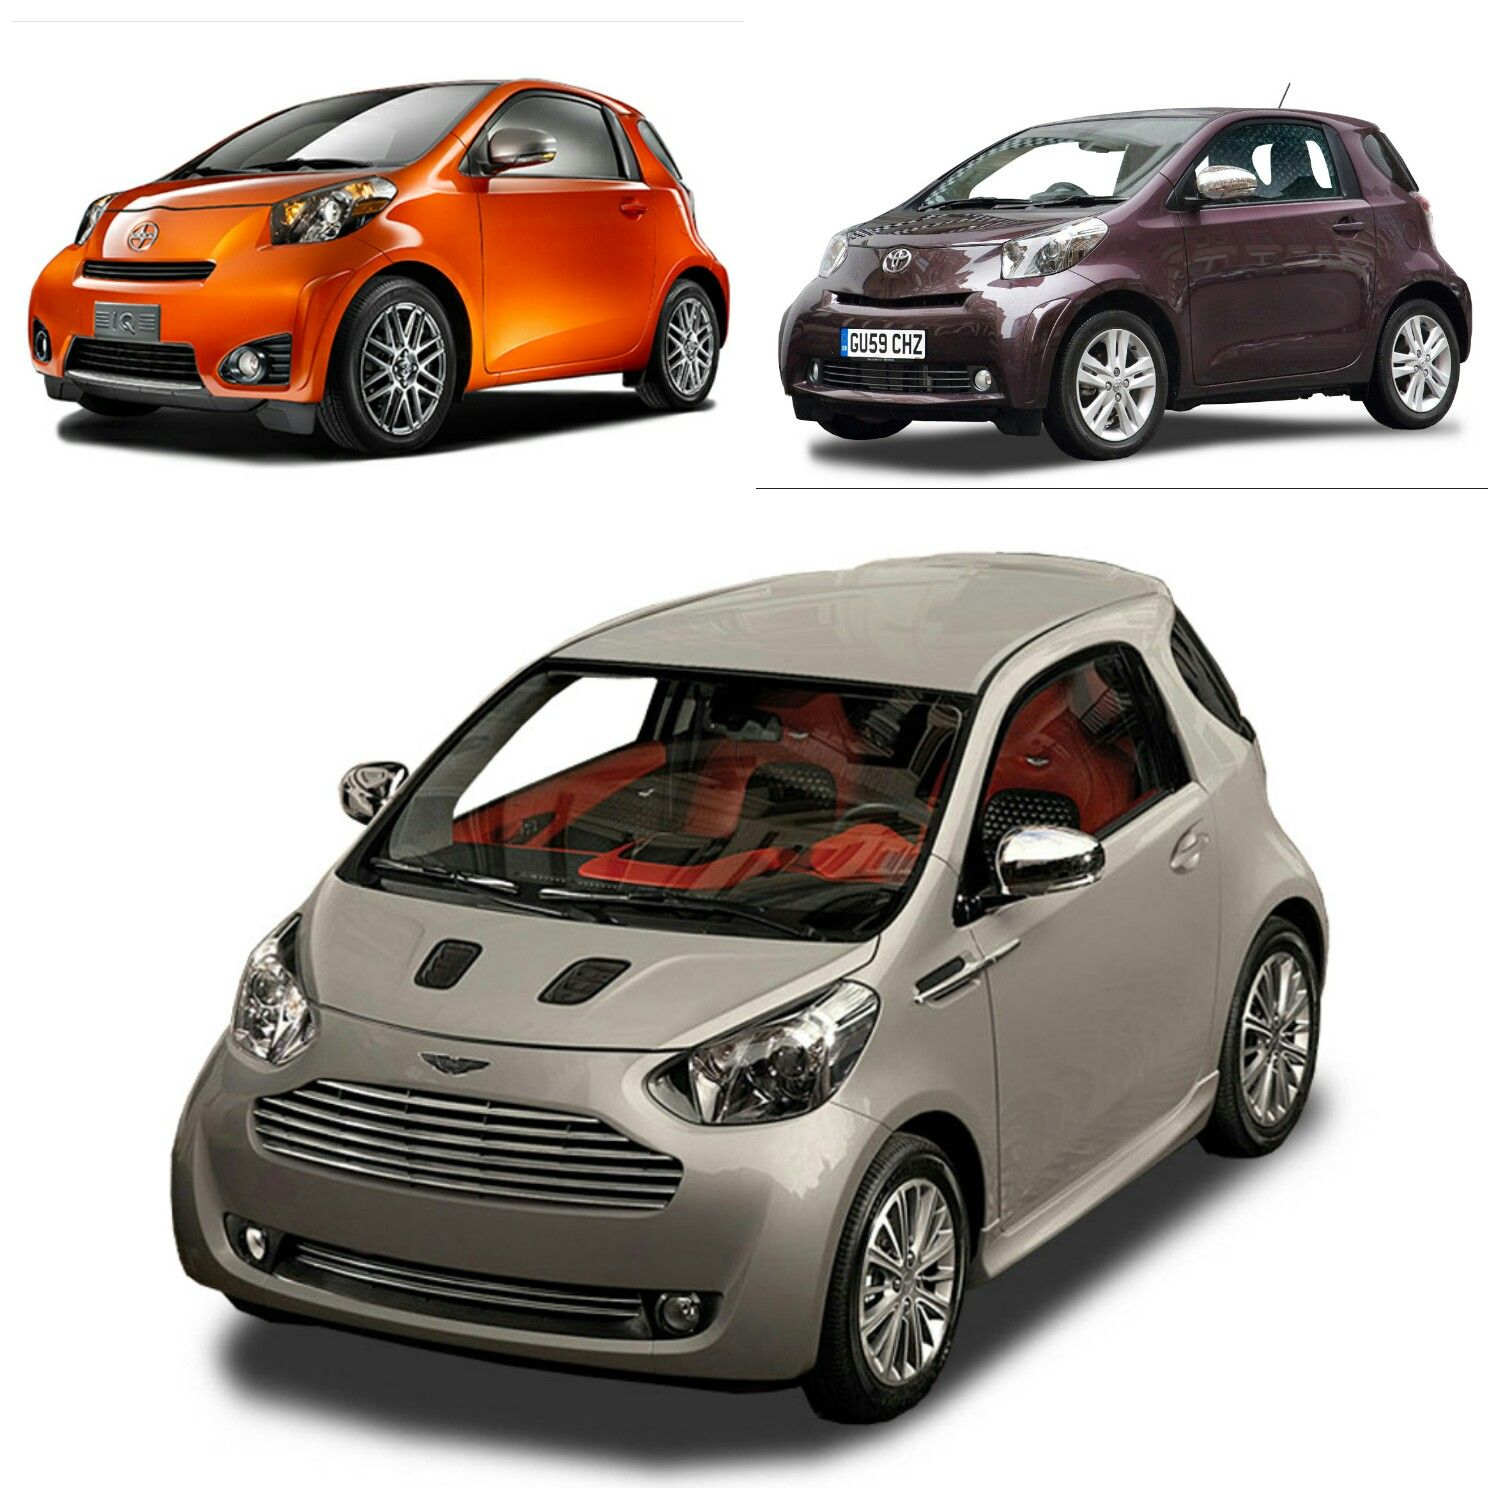 scion iq (top left) - toyota iq (top right) - aston martin cygnet